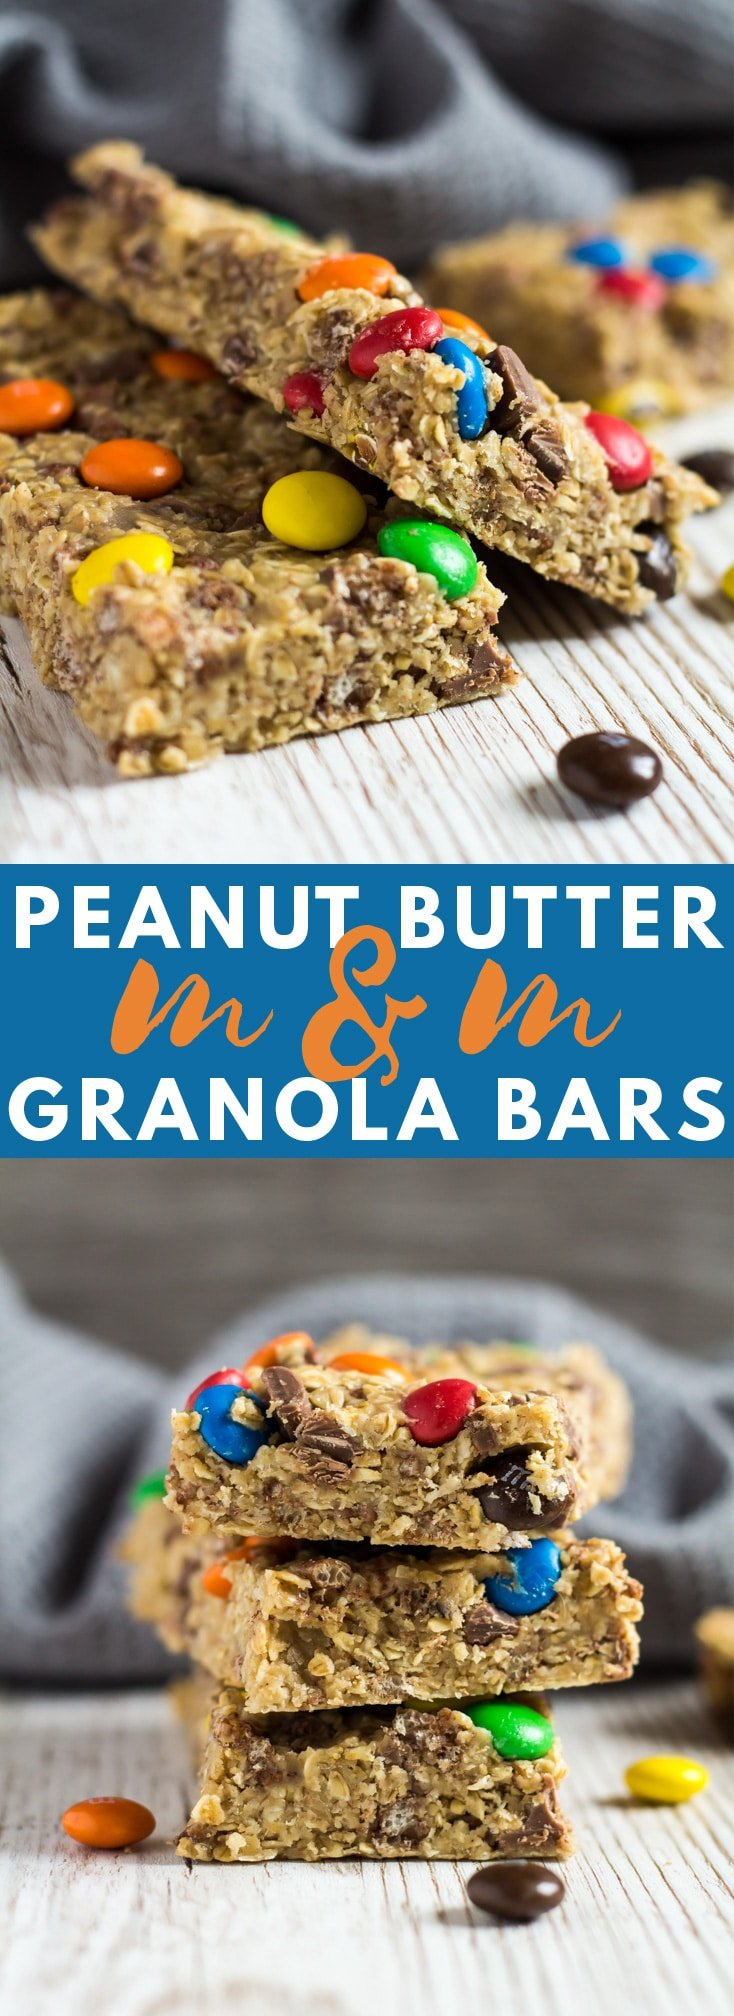 A long image containing two images of No-Bake Peanut Butter M&M Granola Bars with text overlay.